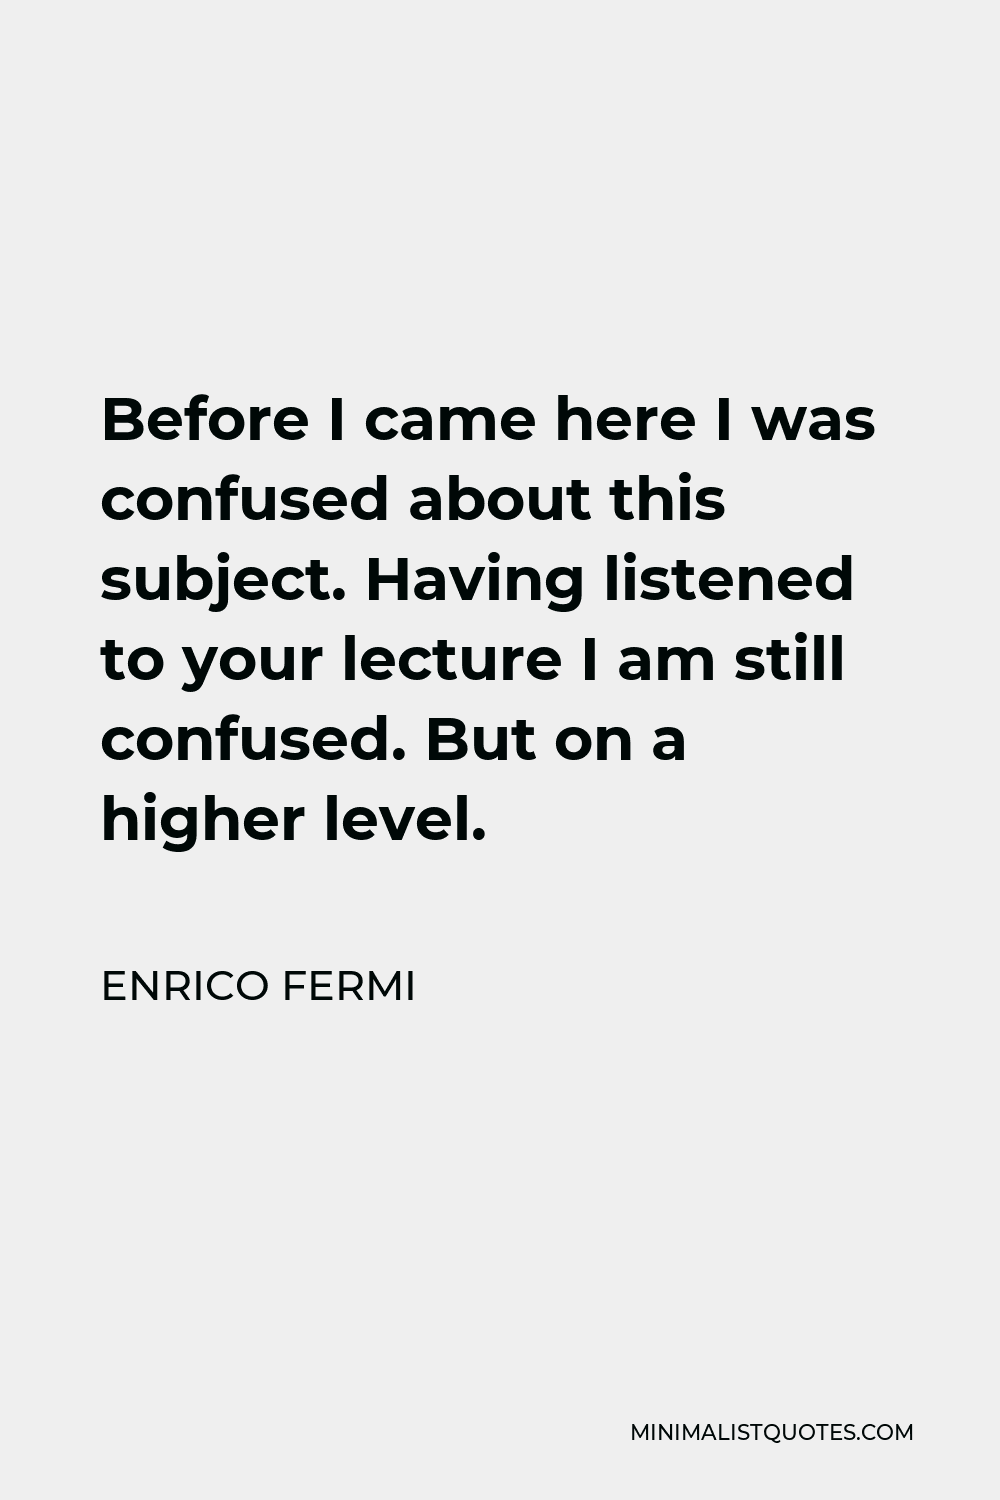 Enrico Fermi Quote - Before I came here I was confused about this subject. Having listened to your lecture I am still confused. But on a higher level.